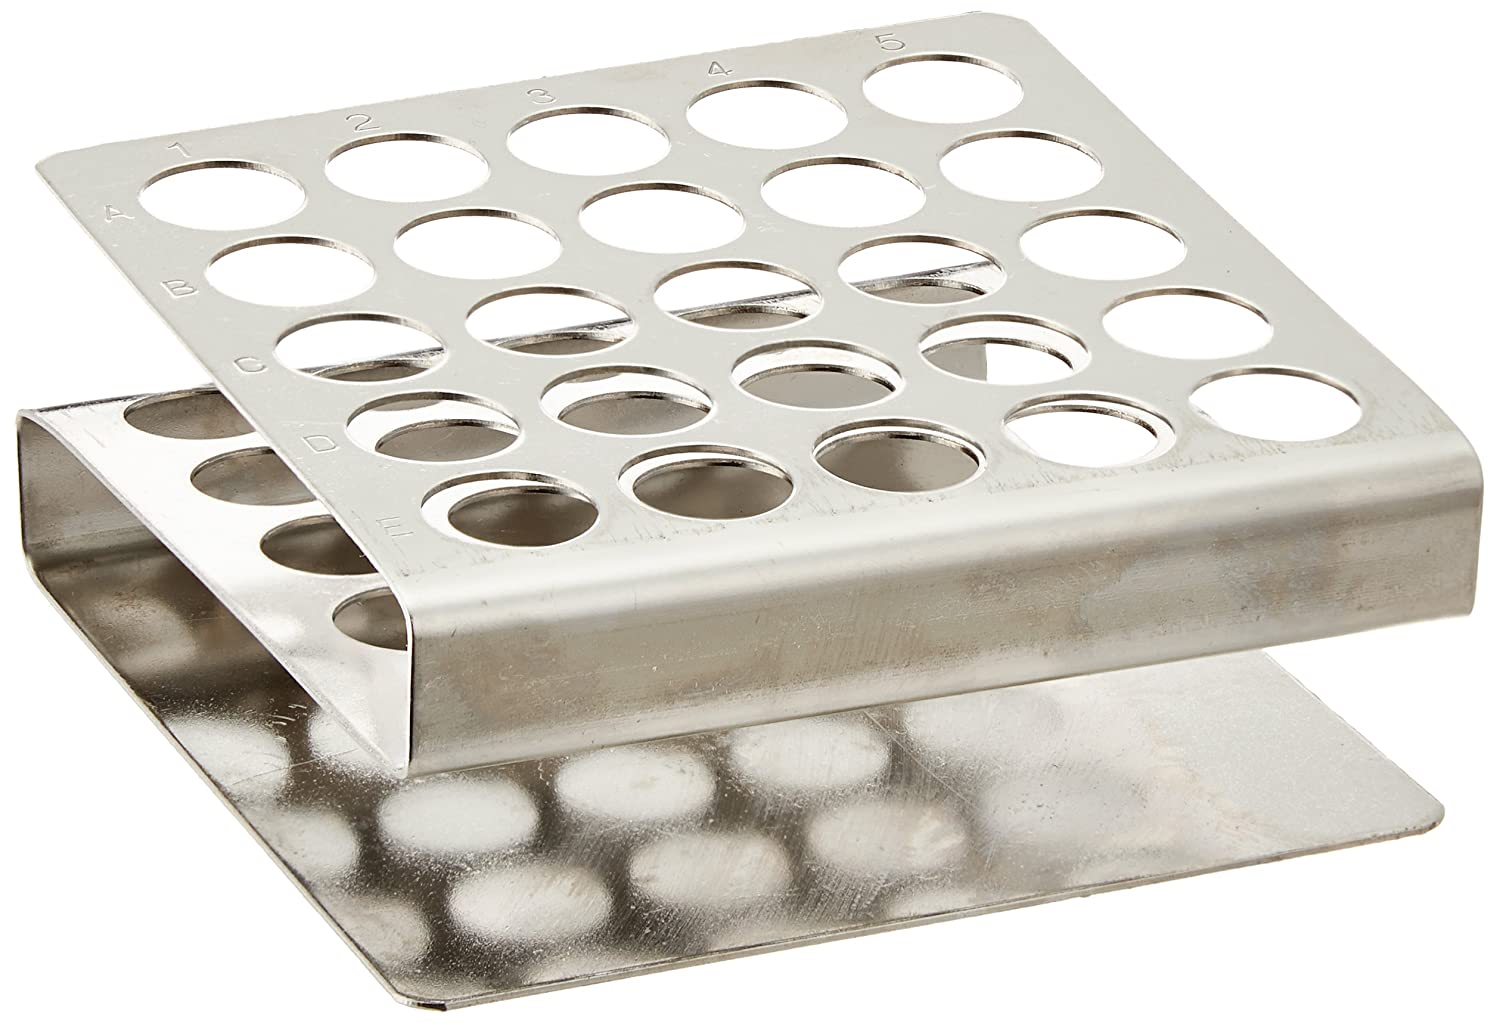 Globe Scientific 457100 Stainless Steel Z Shape Tube Rack 12//13mm Tubes 25-Place